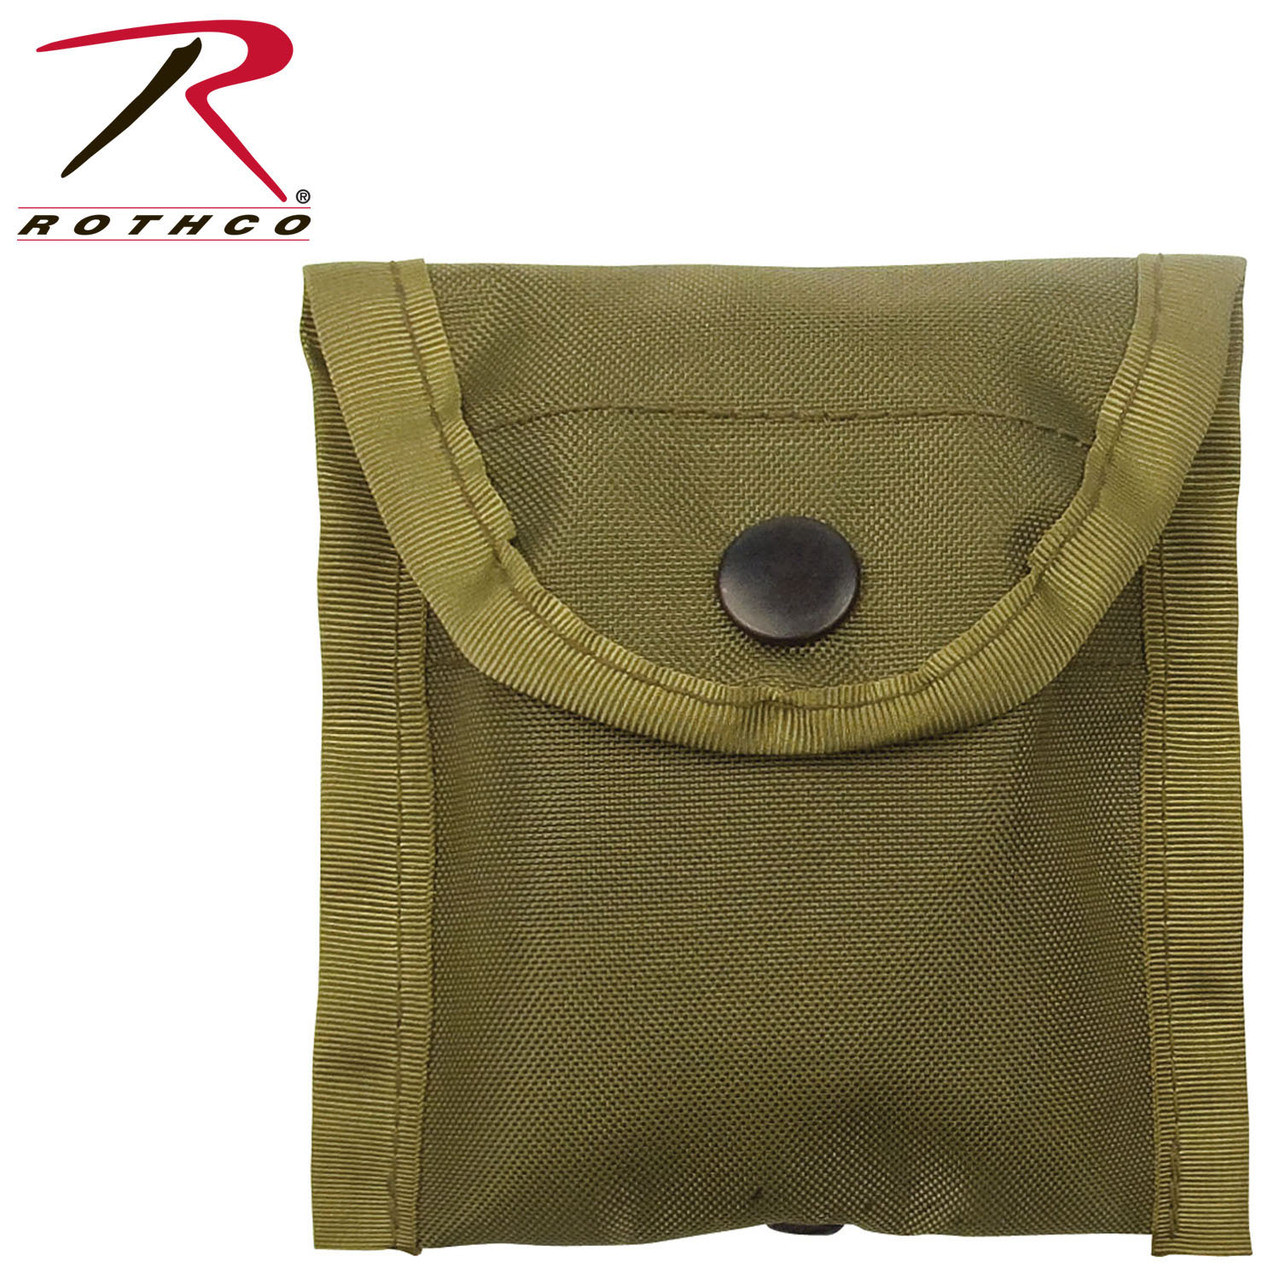 125564cf48 Rothco Nylon Compass Pouch - LMGS Online